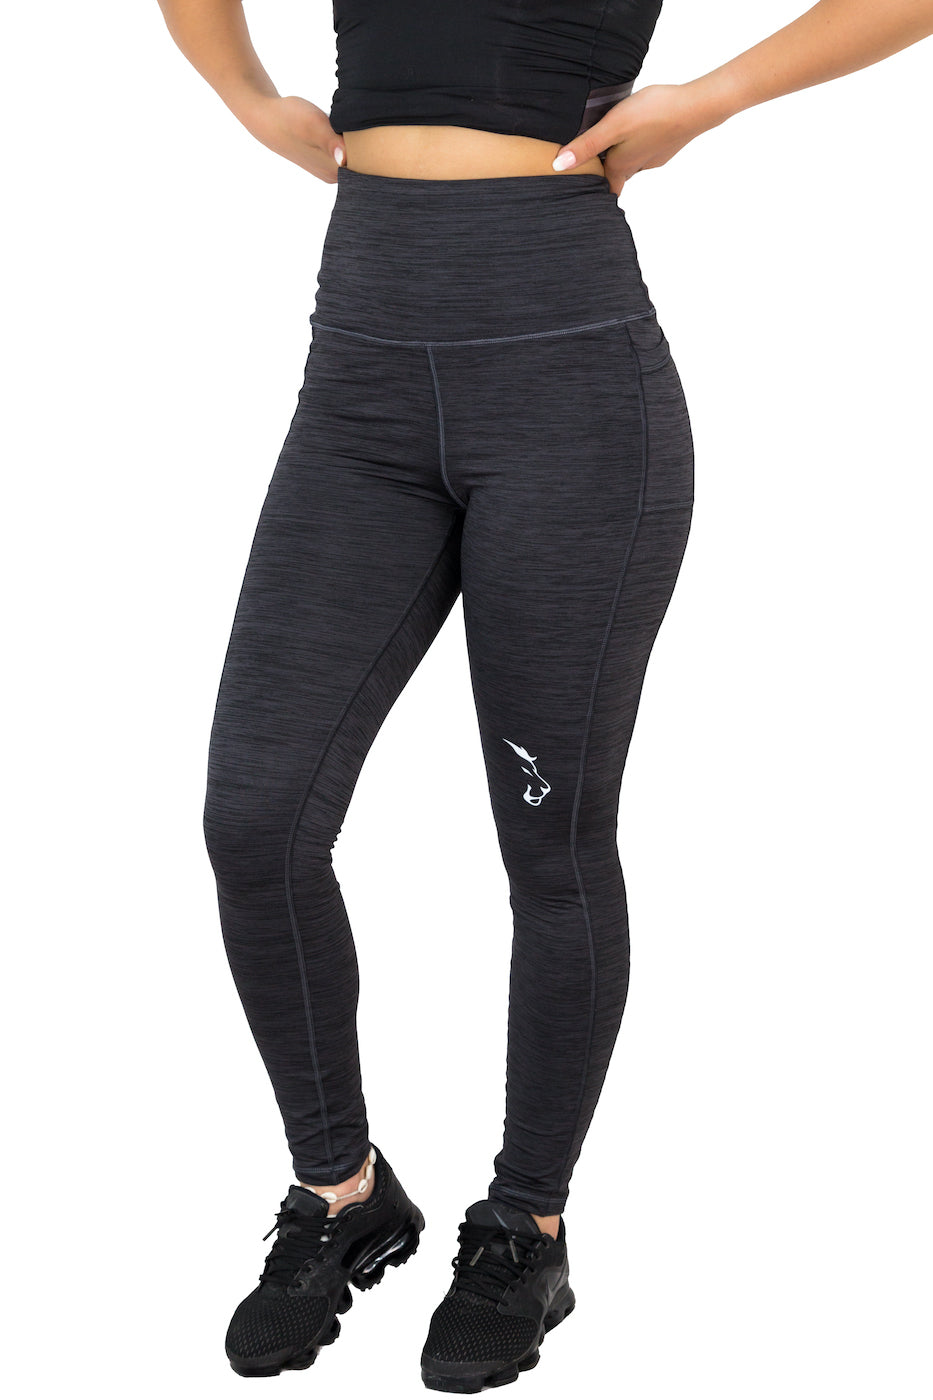 Knee Tag - Women Storm Leggings